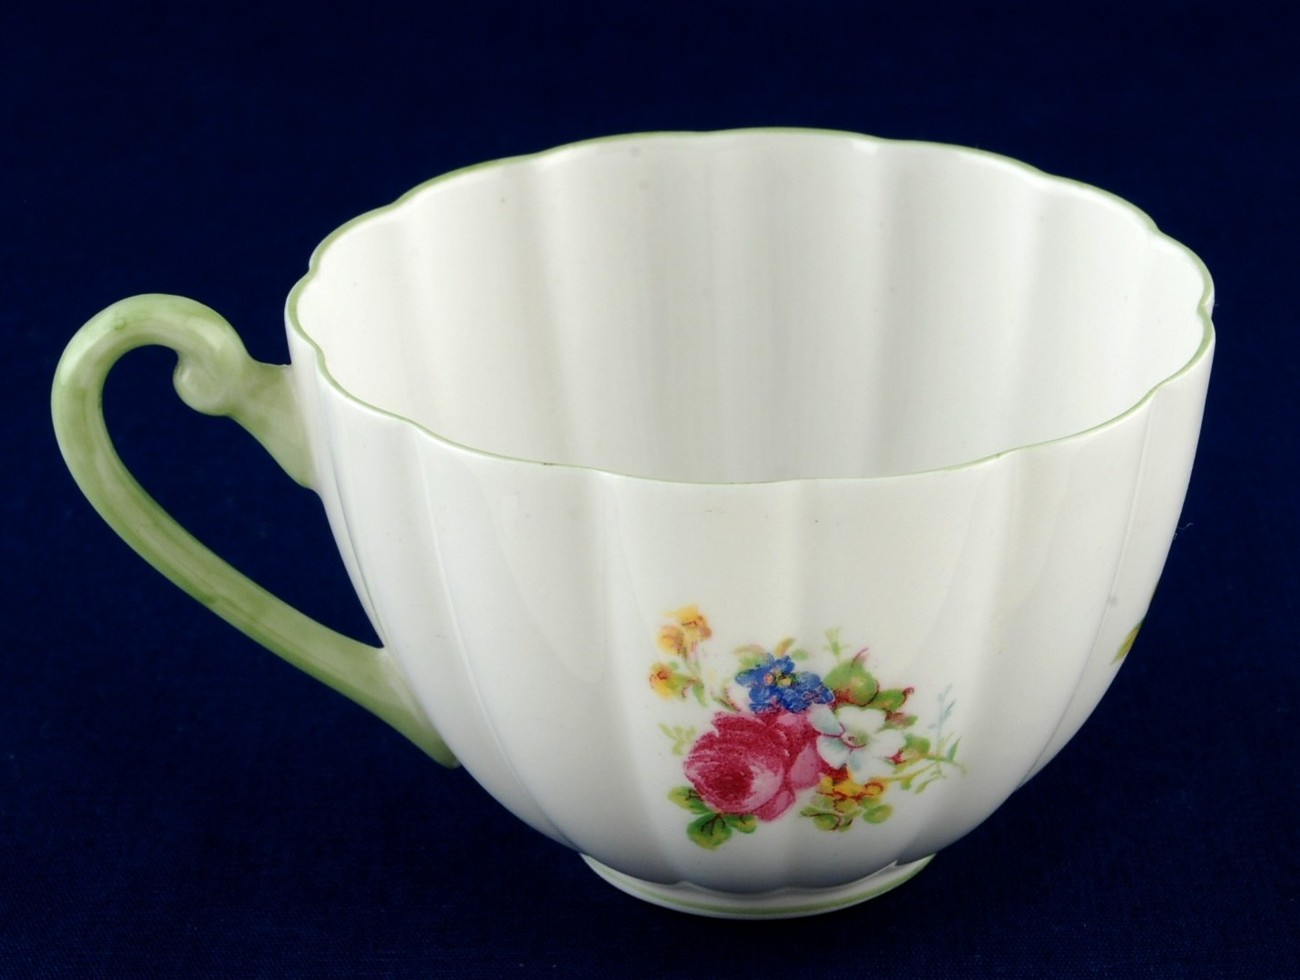 Shelley Hulmes Rose Cup Ludlow Shape Green Rim / Handle 13240 Mint